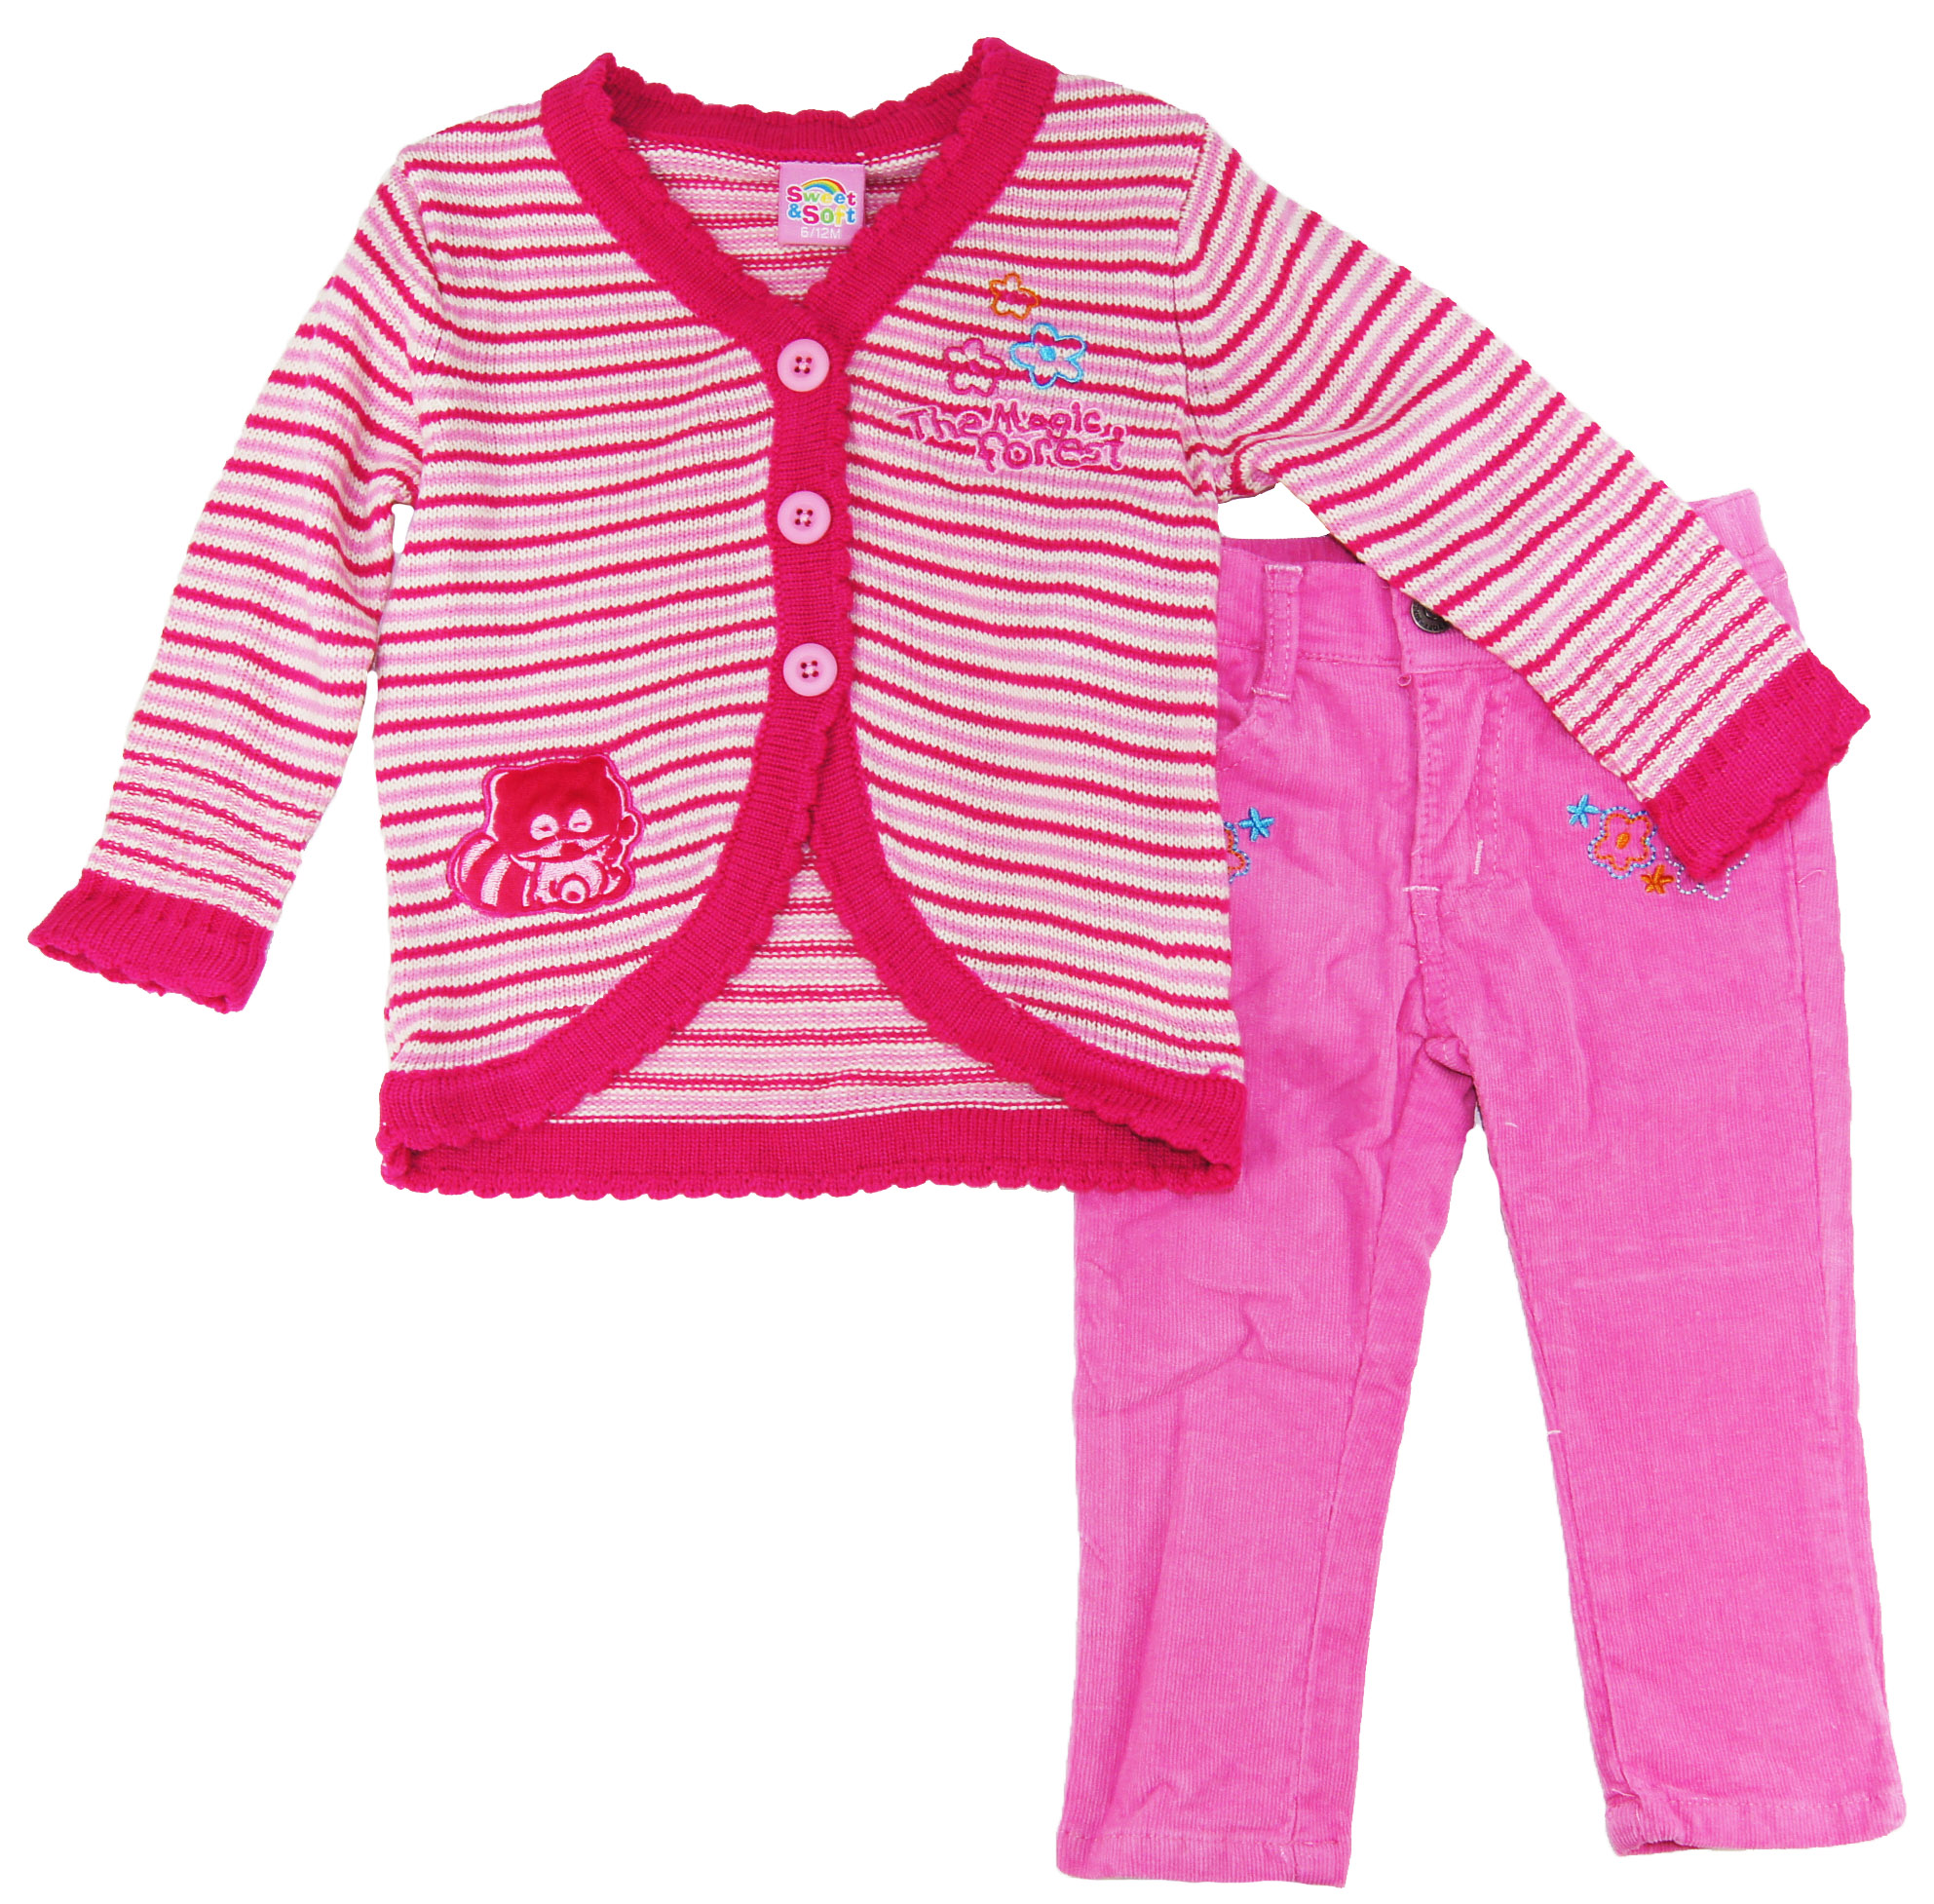 Sweet & Soft Little Girls' Magic Forest Cardigan with Corduroy Pants Set